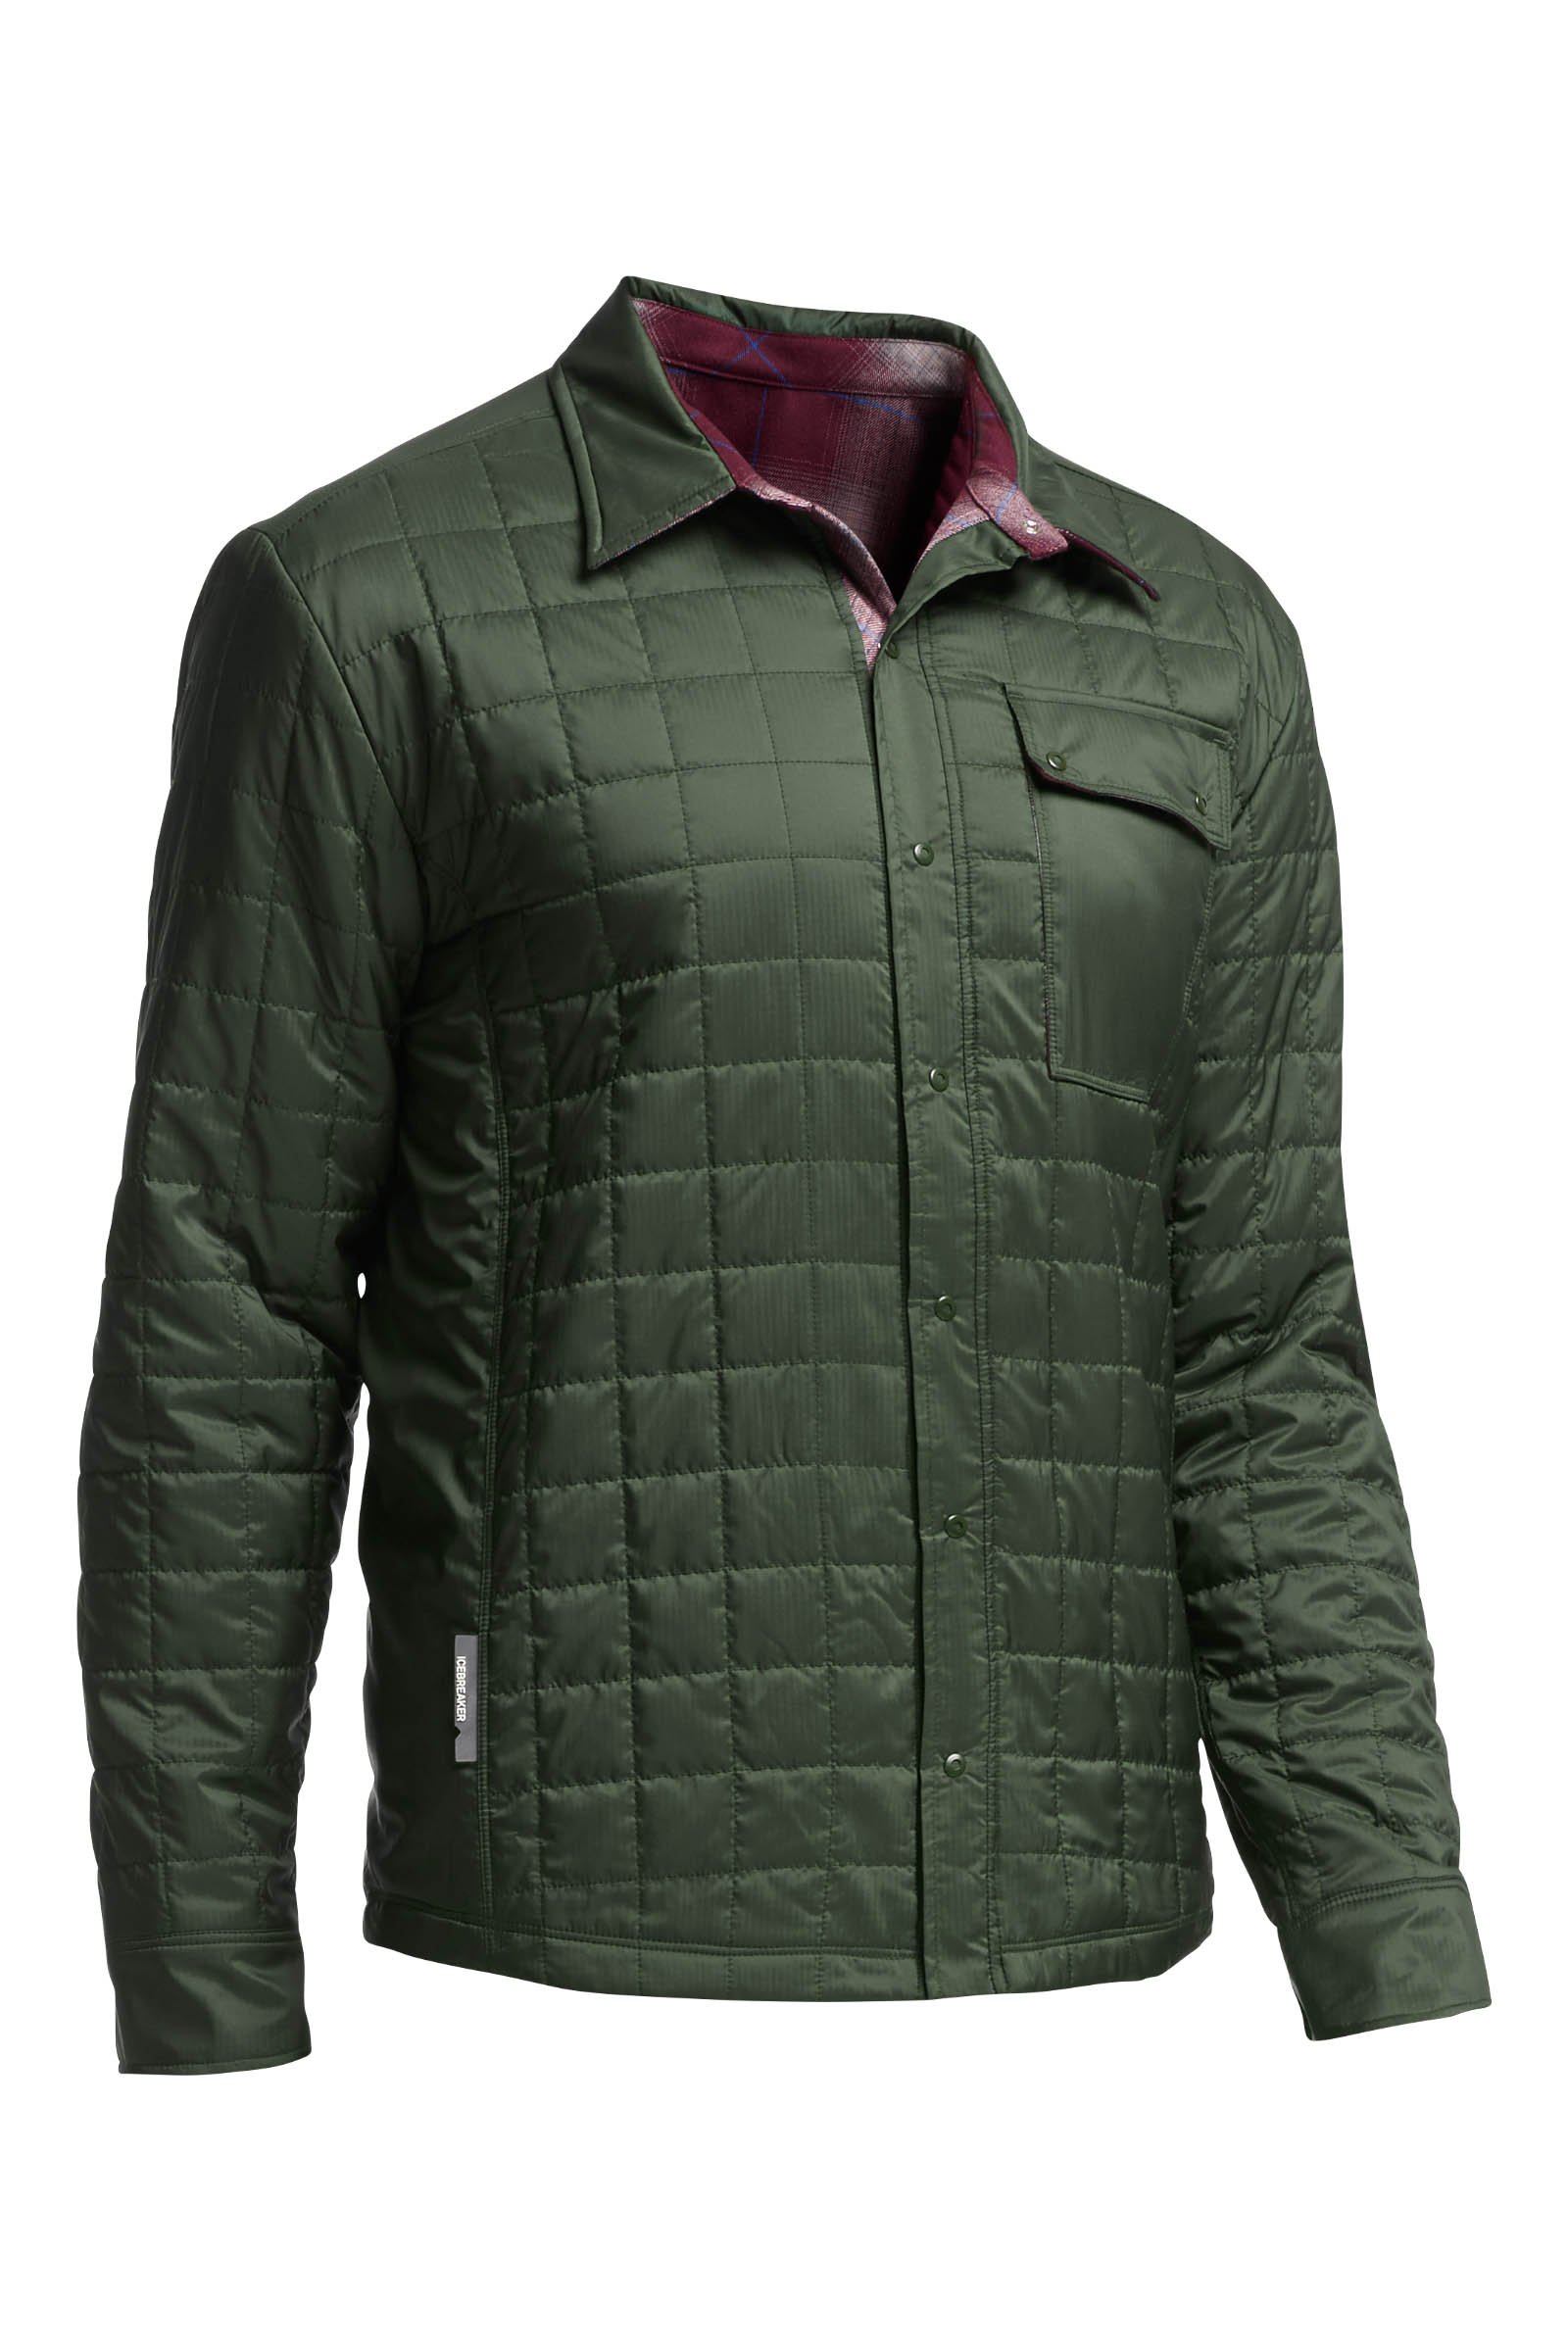 Icebreaker Merino Men's Helix Button Down Shirt Jacket, New Zealand Merino Wool, Conifer/Redwood/Awesome, Medium